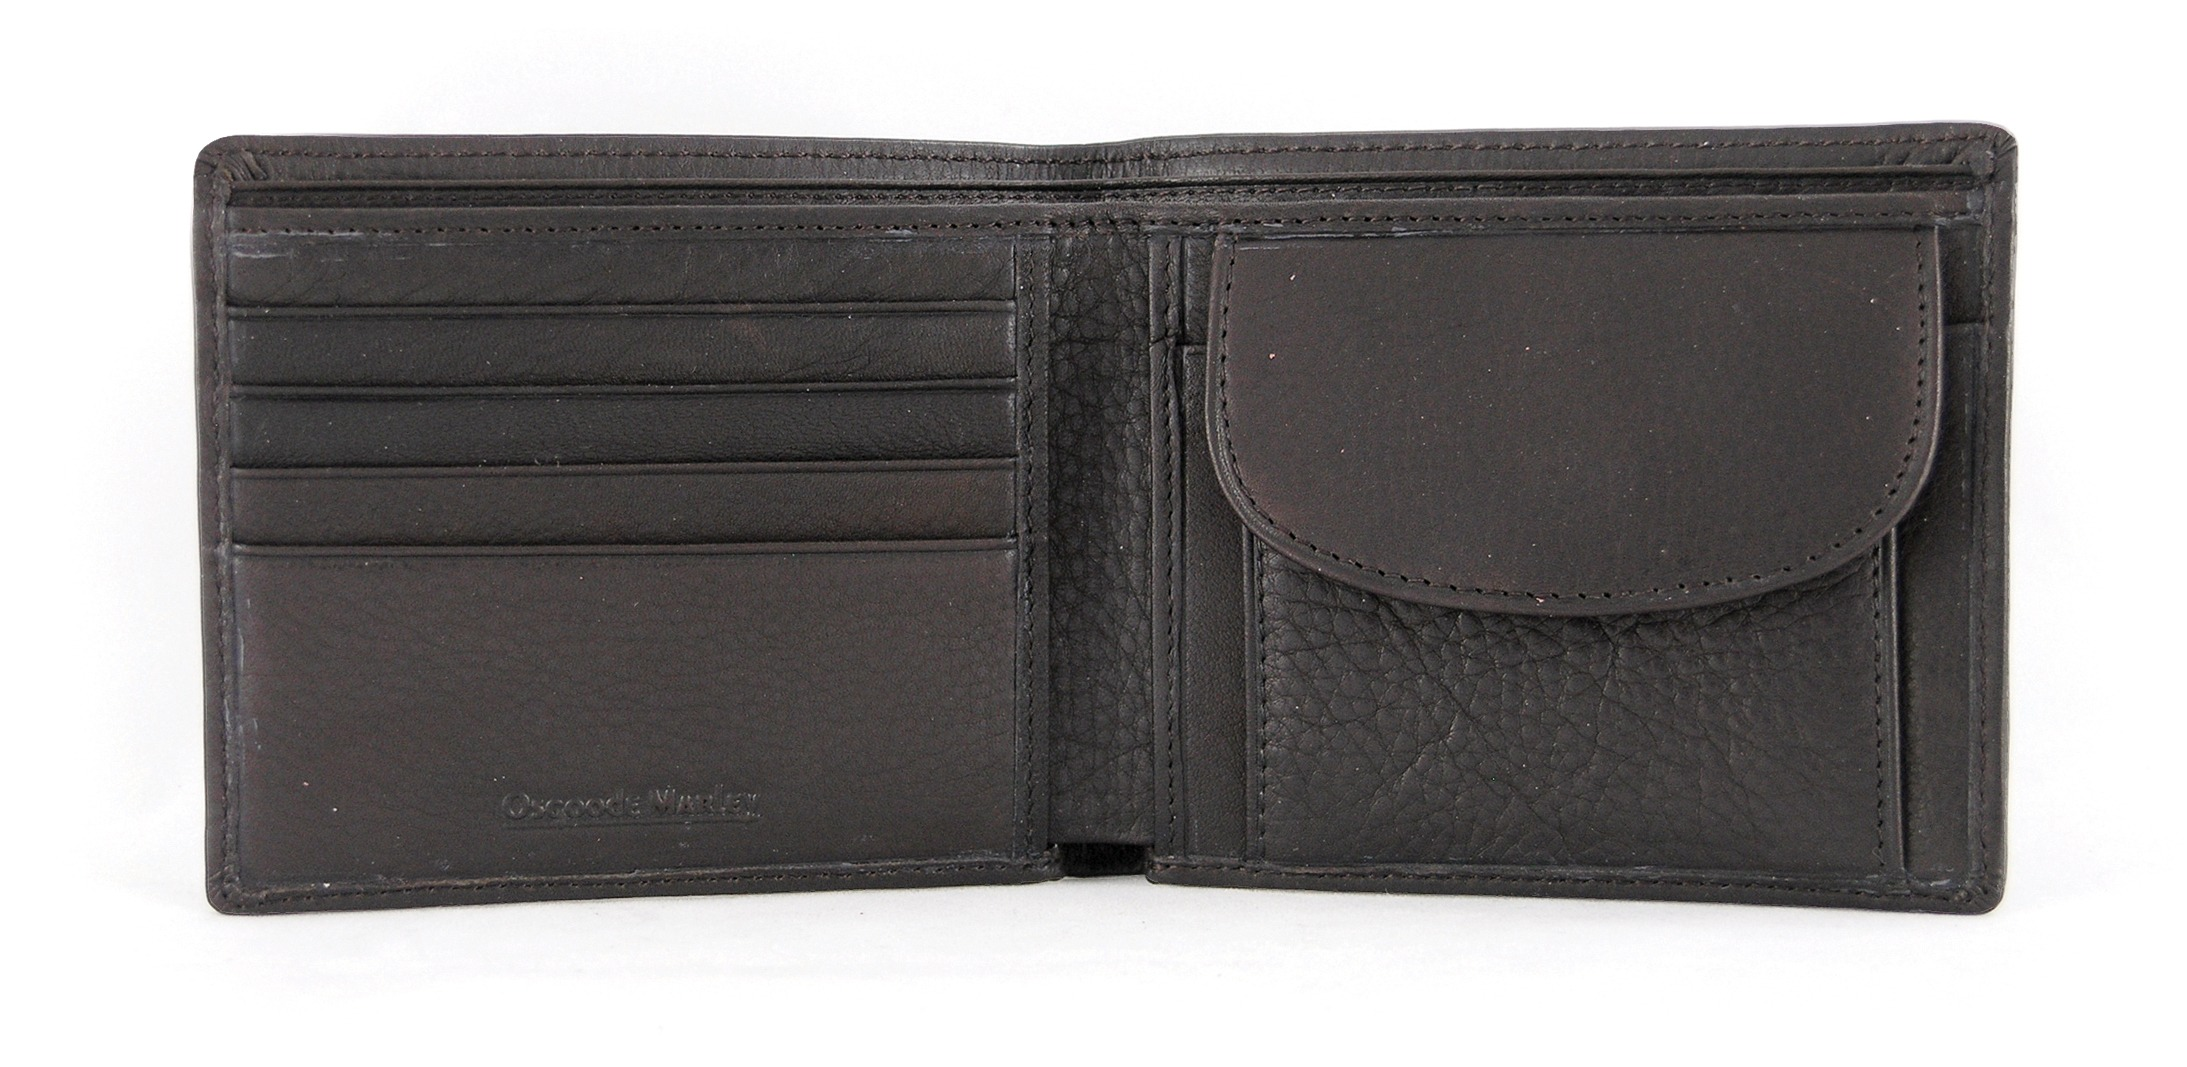 Osgoode Marley #1514 Coin Pocket Billfold